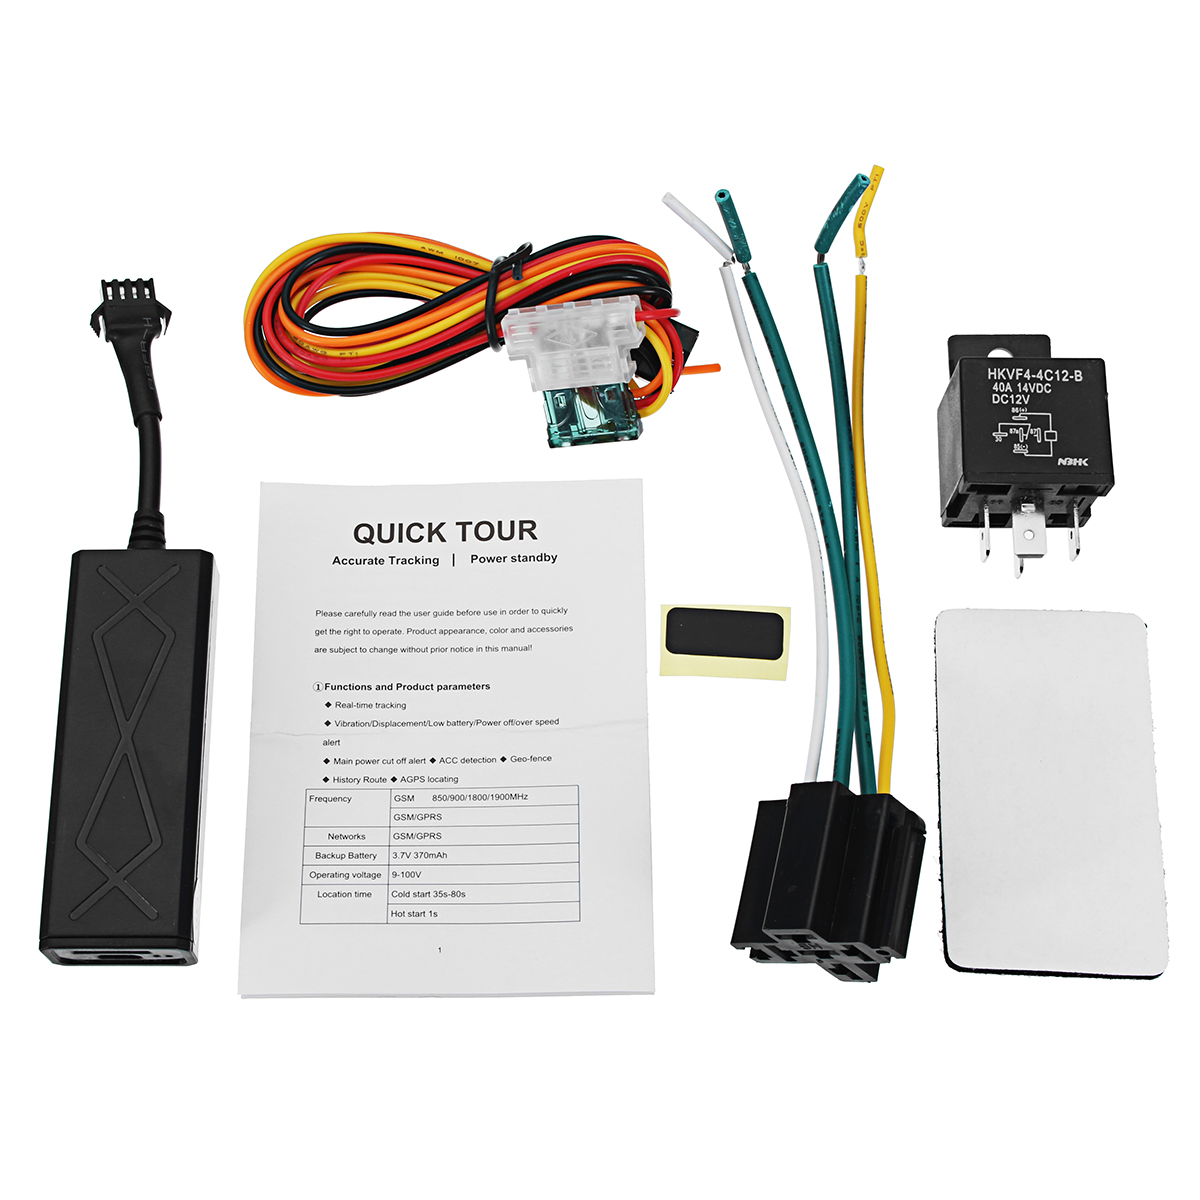 12V-100V Smart GPS Tracker Locator For Car Motorcycle Scooter GT002C